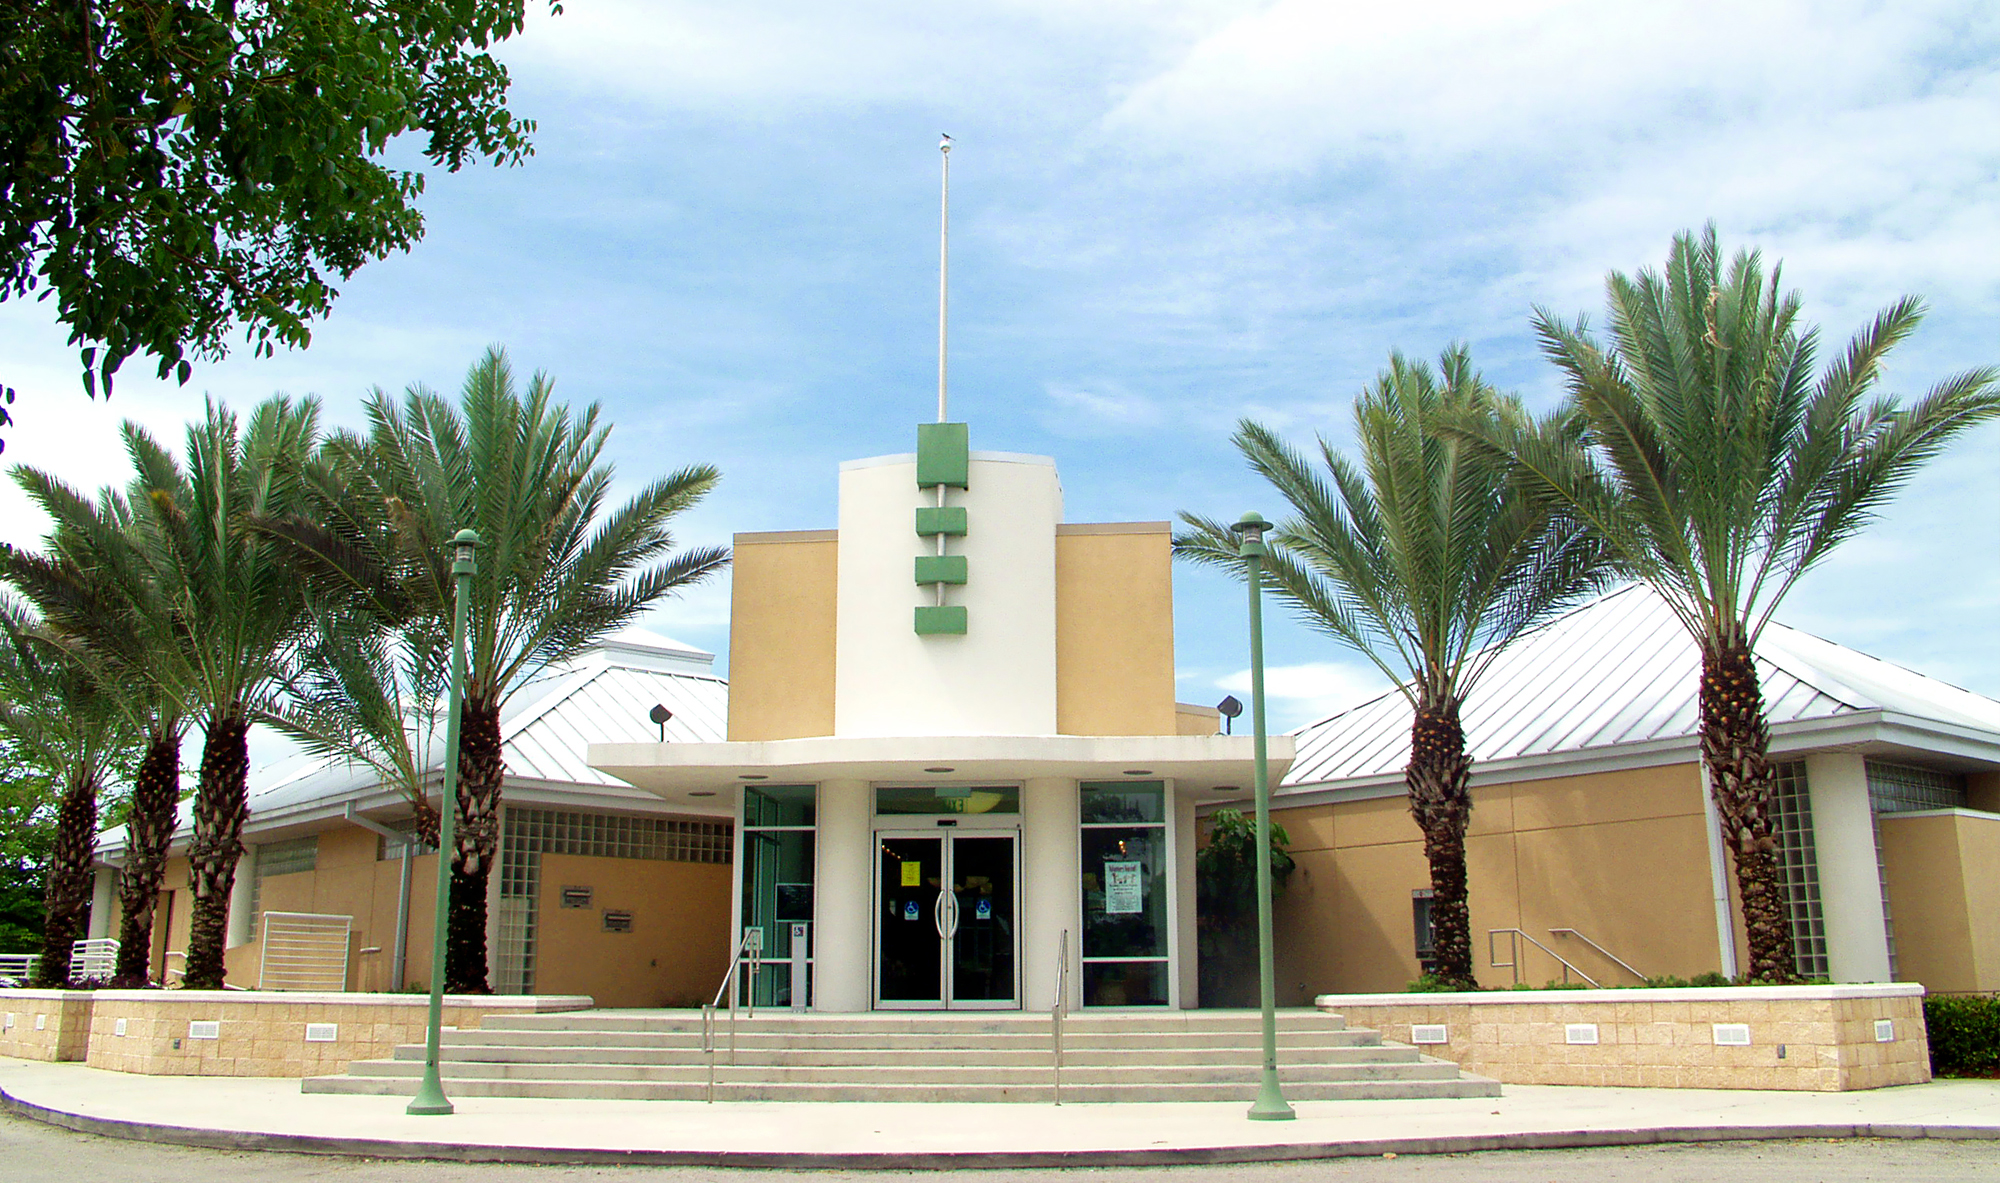 Marco Island Library